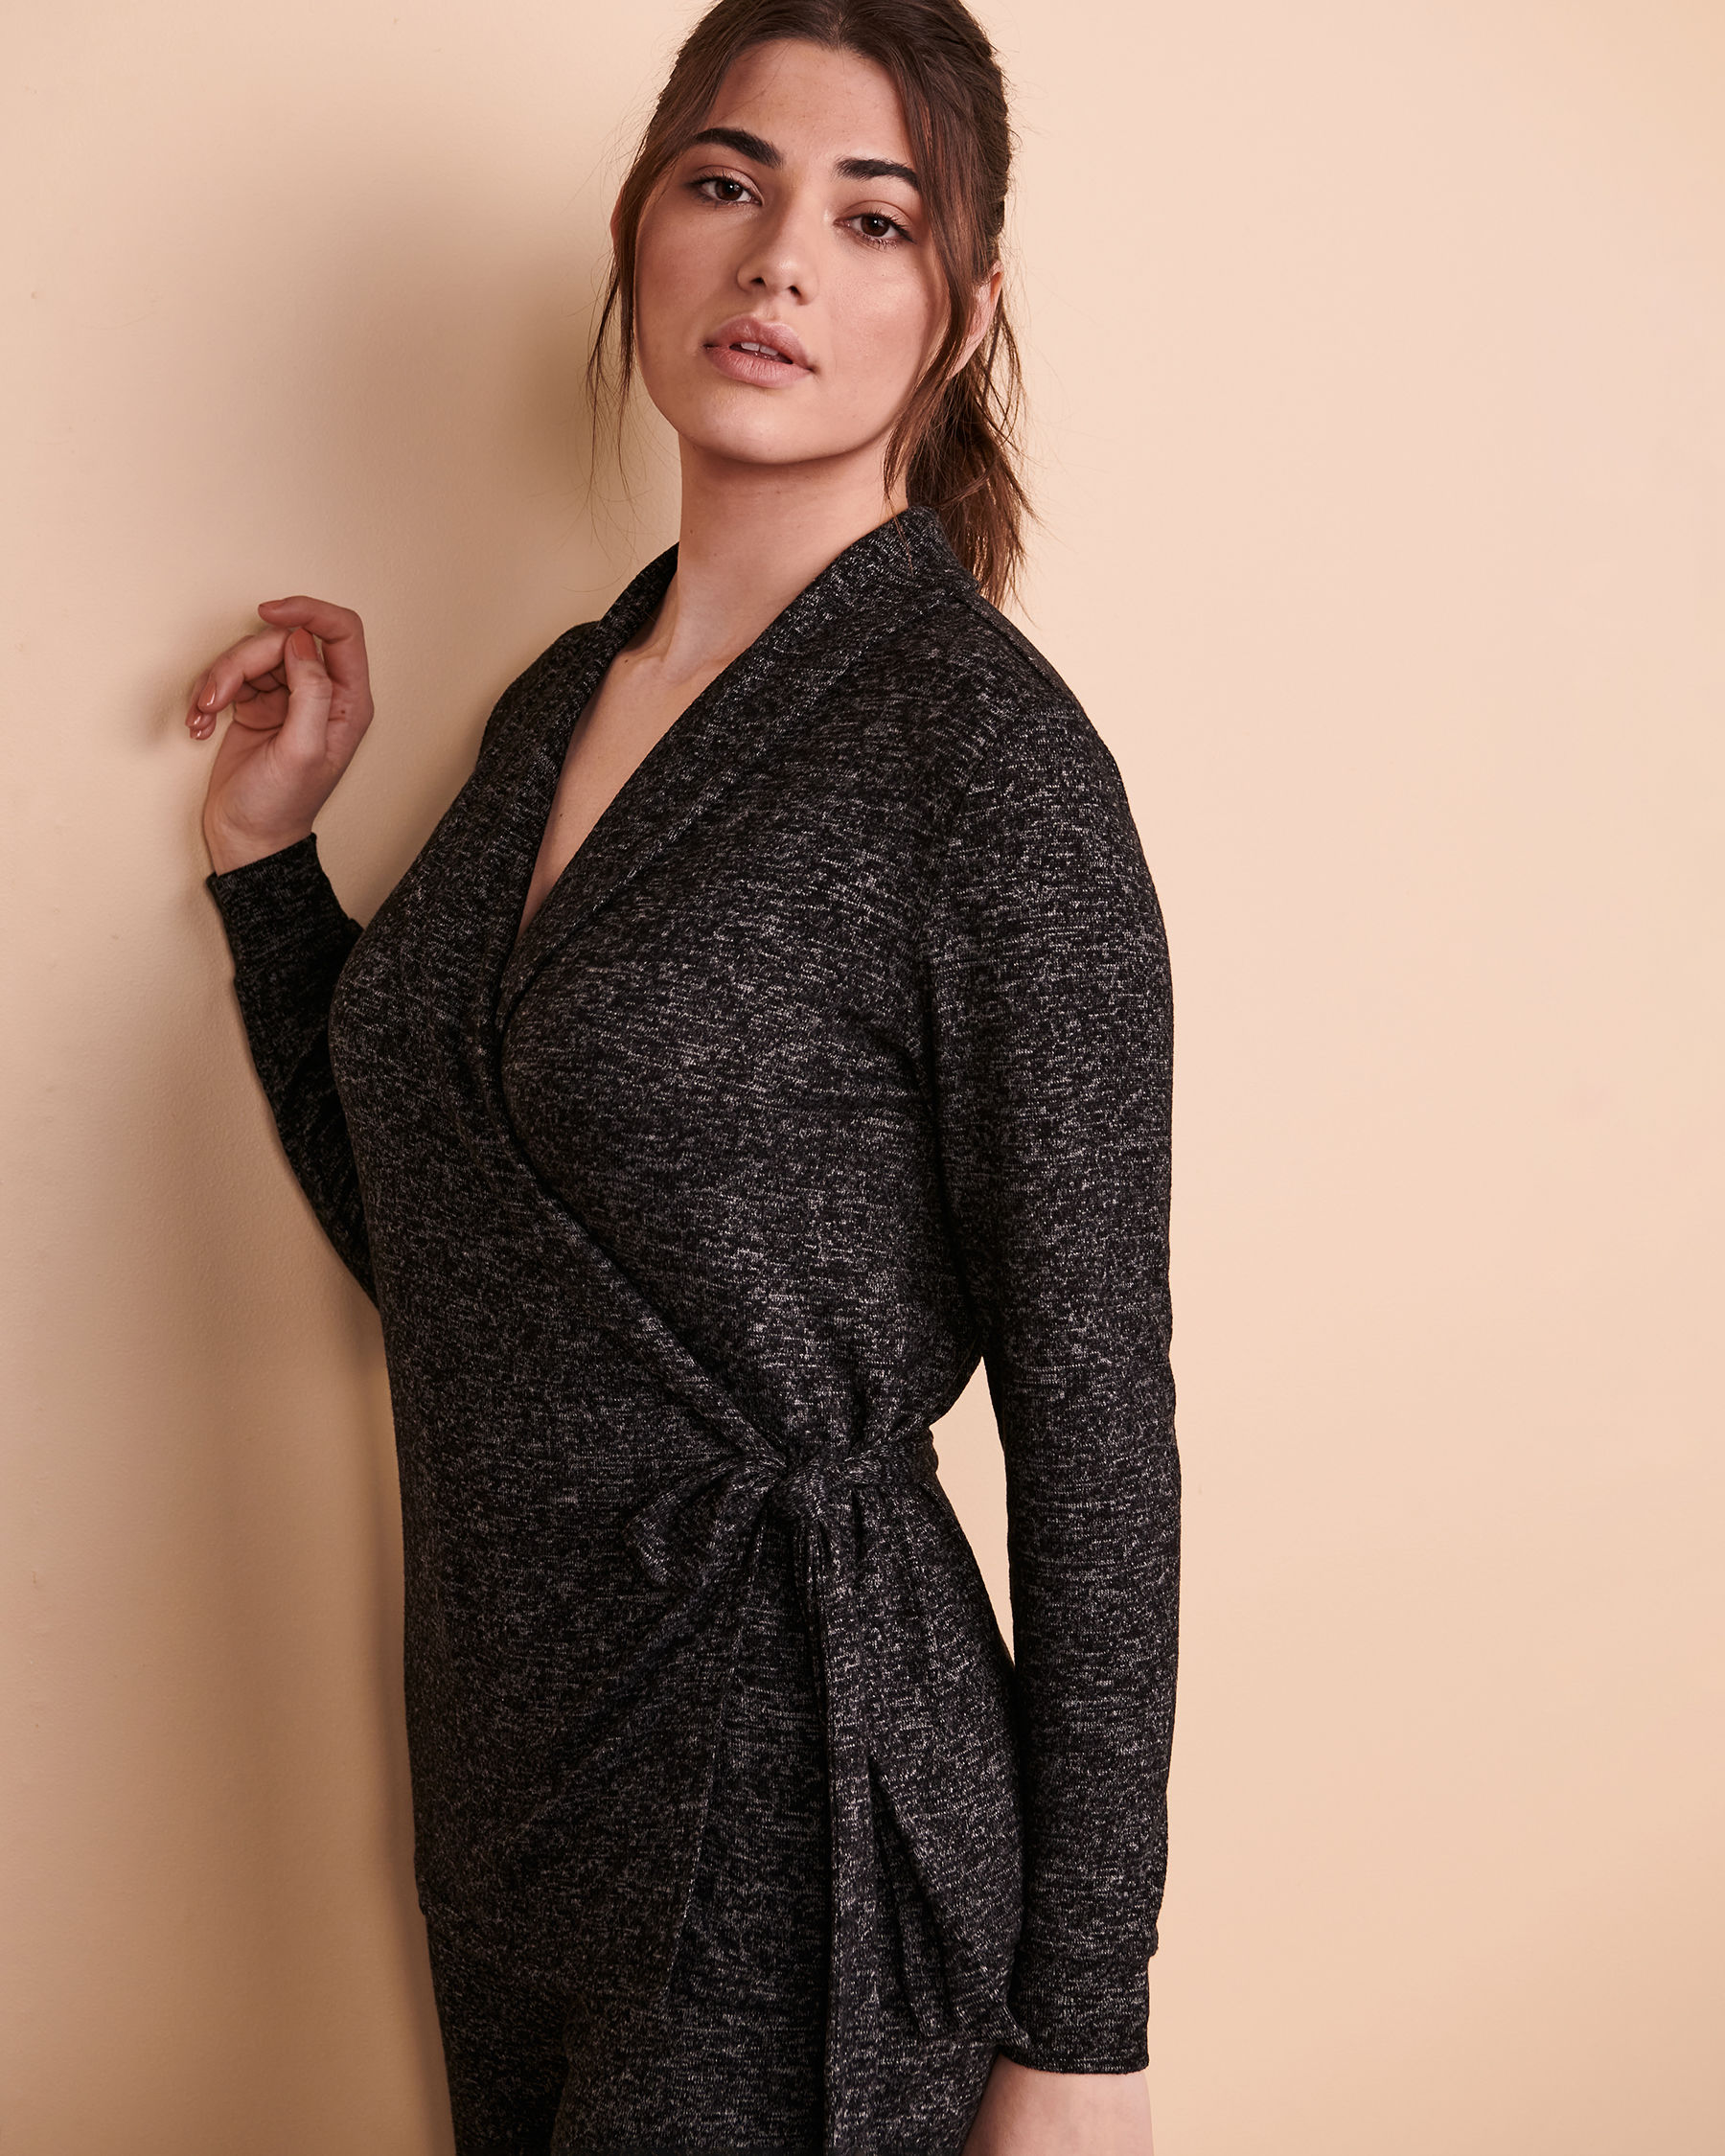 TURQUOISE COUTURE Wrapover Cardigan Black 02100003 - View1